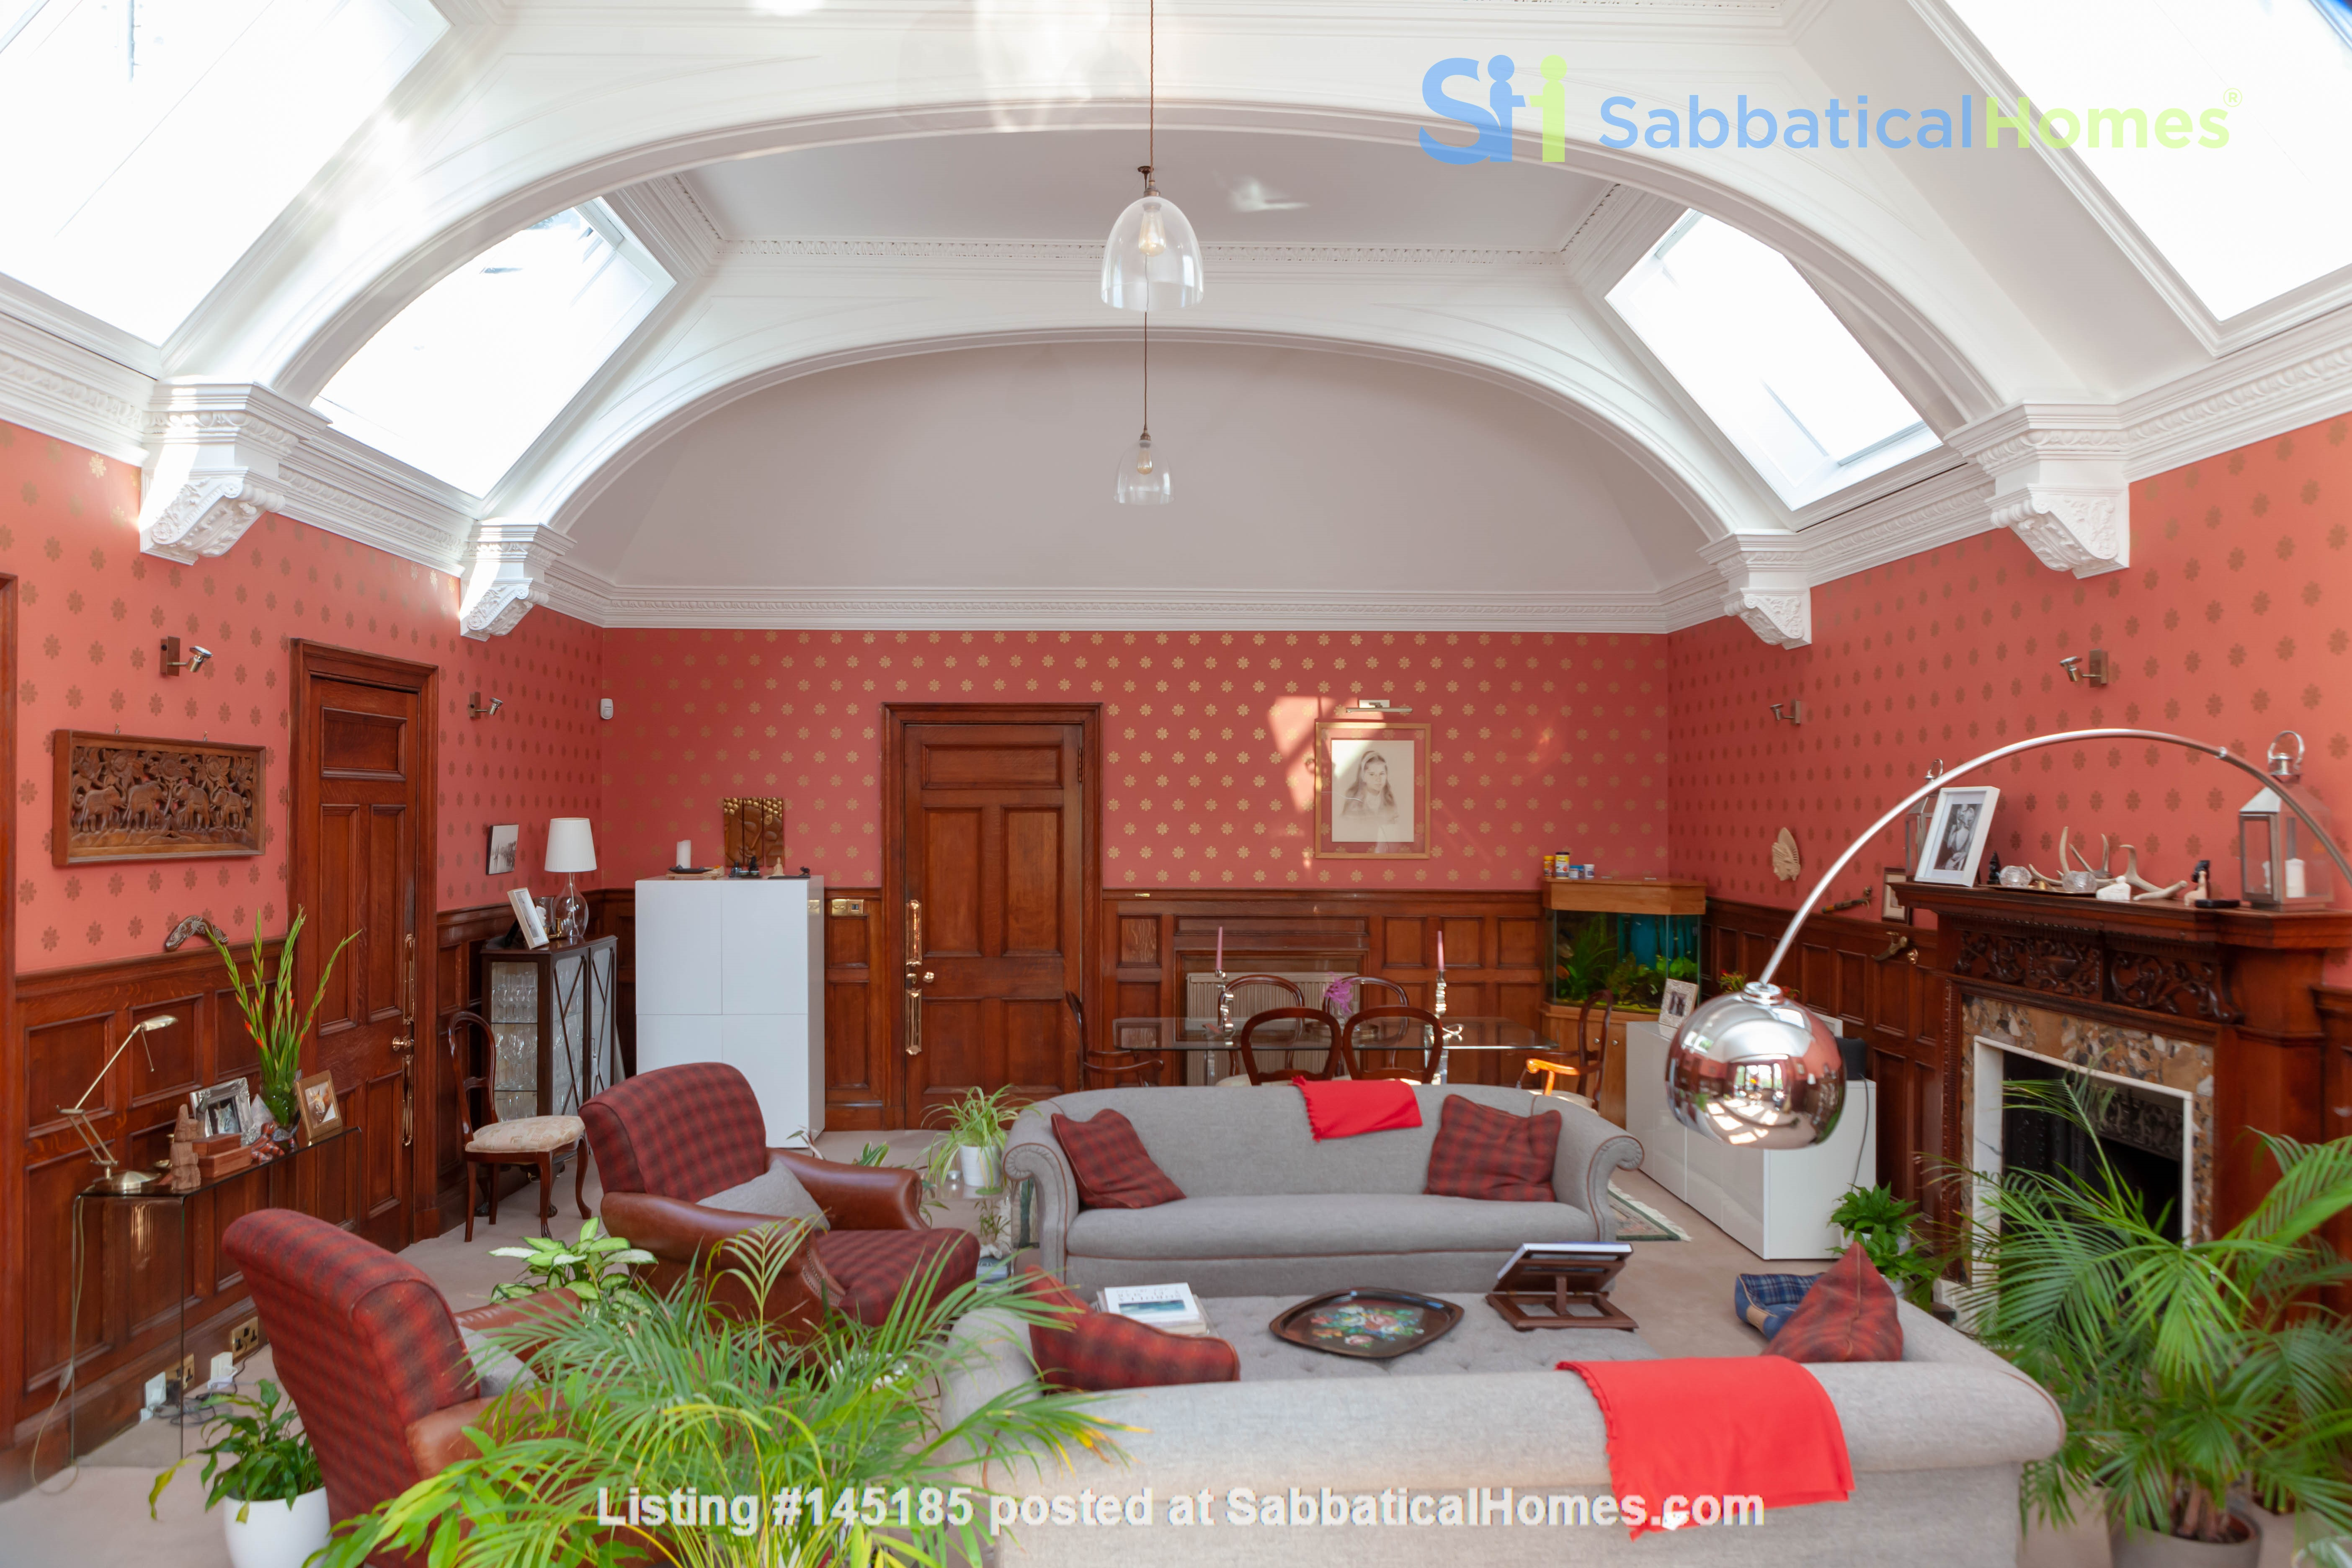 Stunning House for a fish, gardener and architectural lover. Home Rental in Edinburgh, Scotland, United Kingdom 0